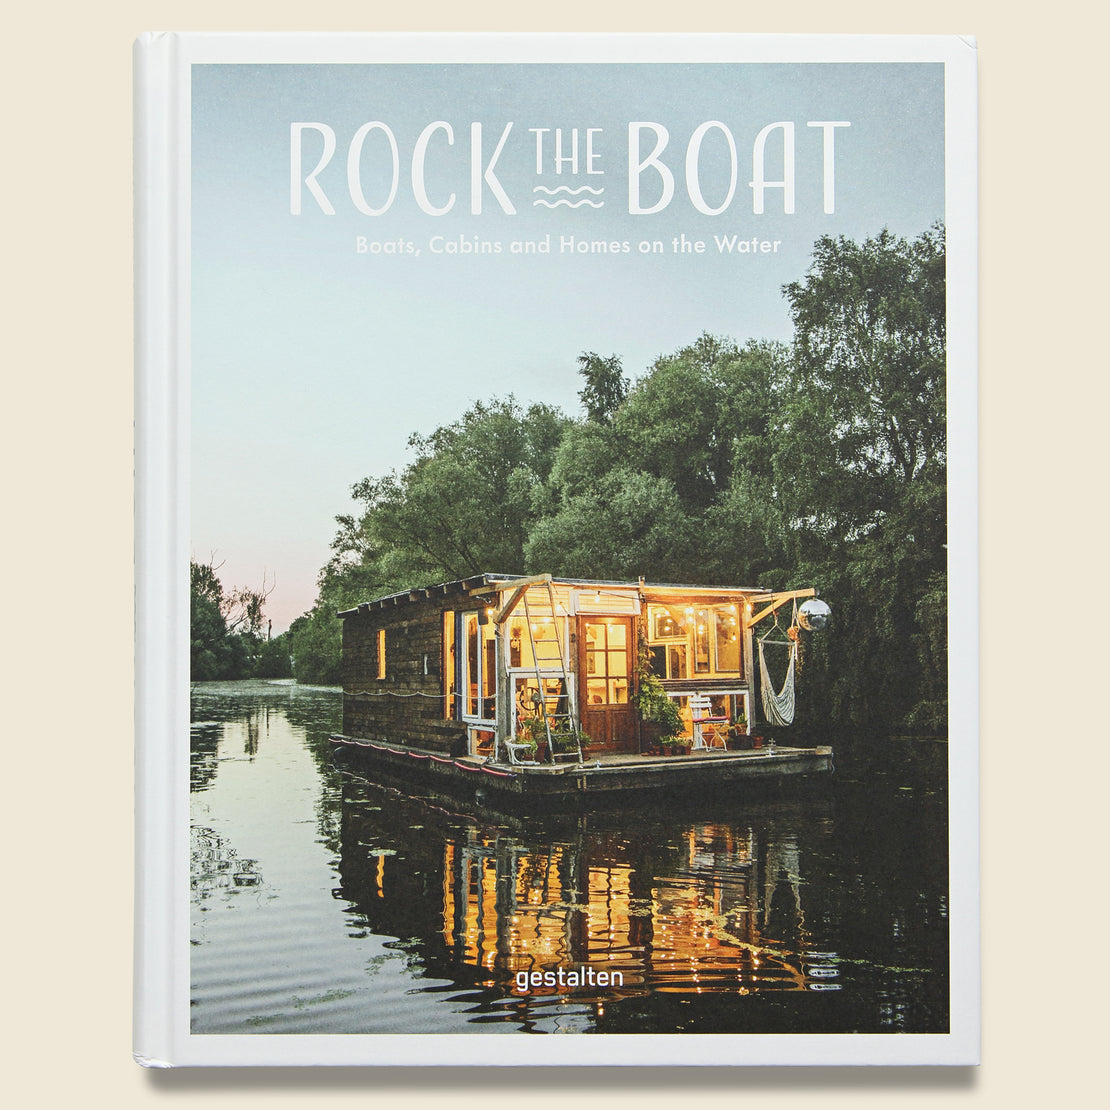 Bookstore Rock the Boat: Boats, Cabins and Homes on the Water